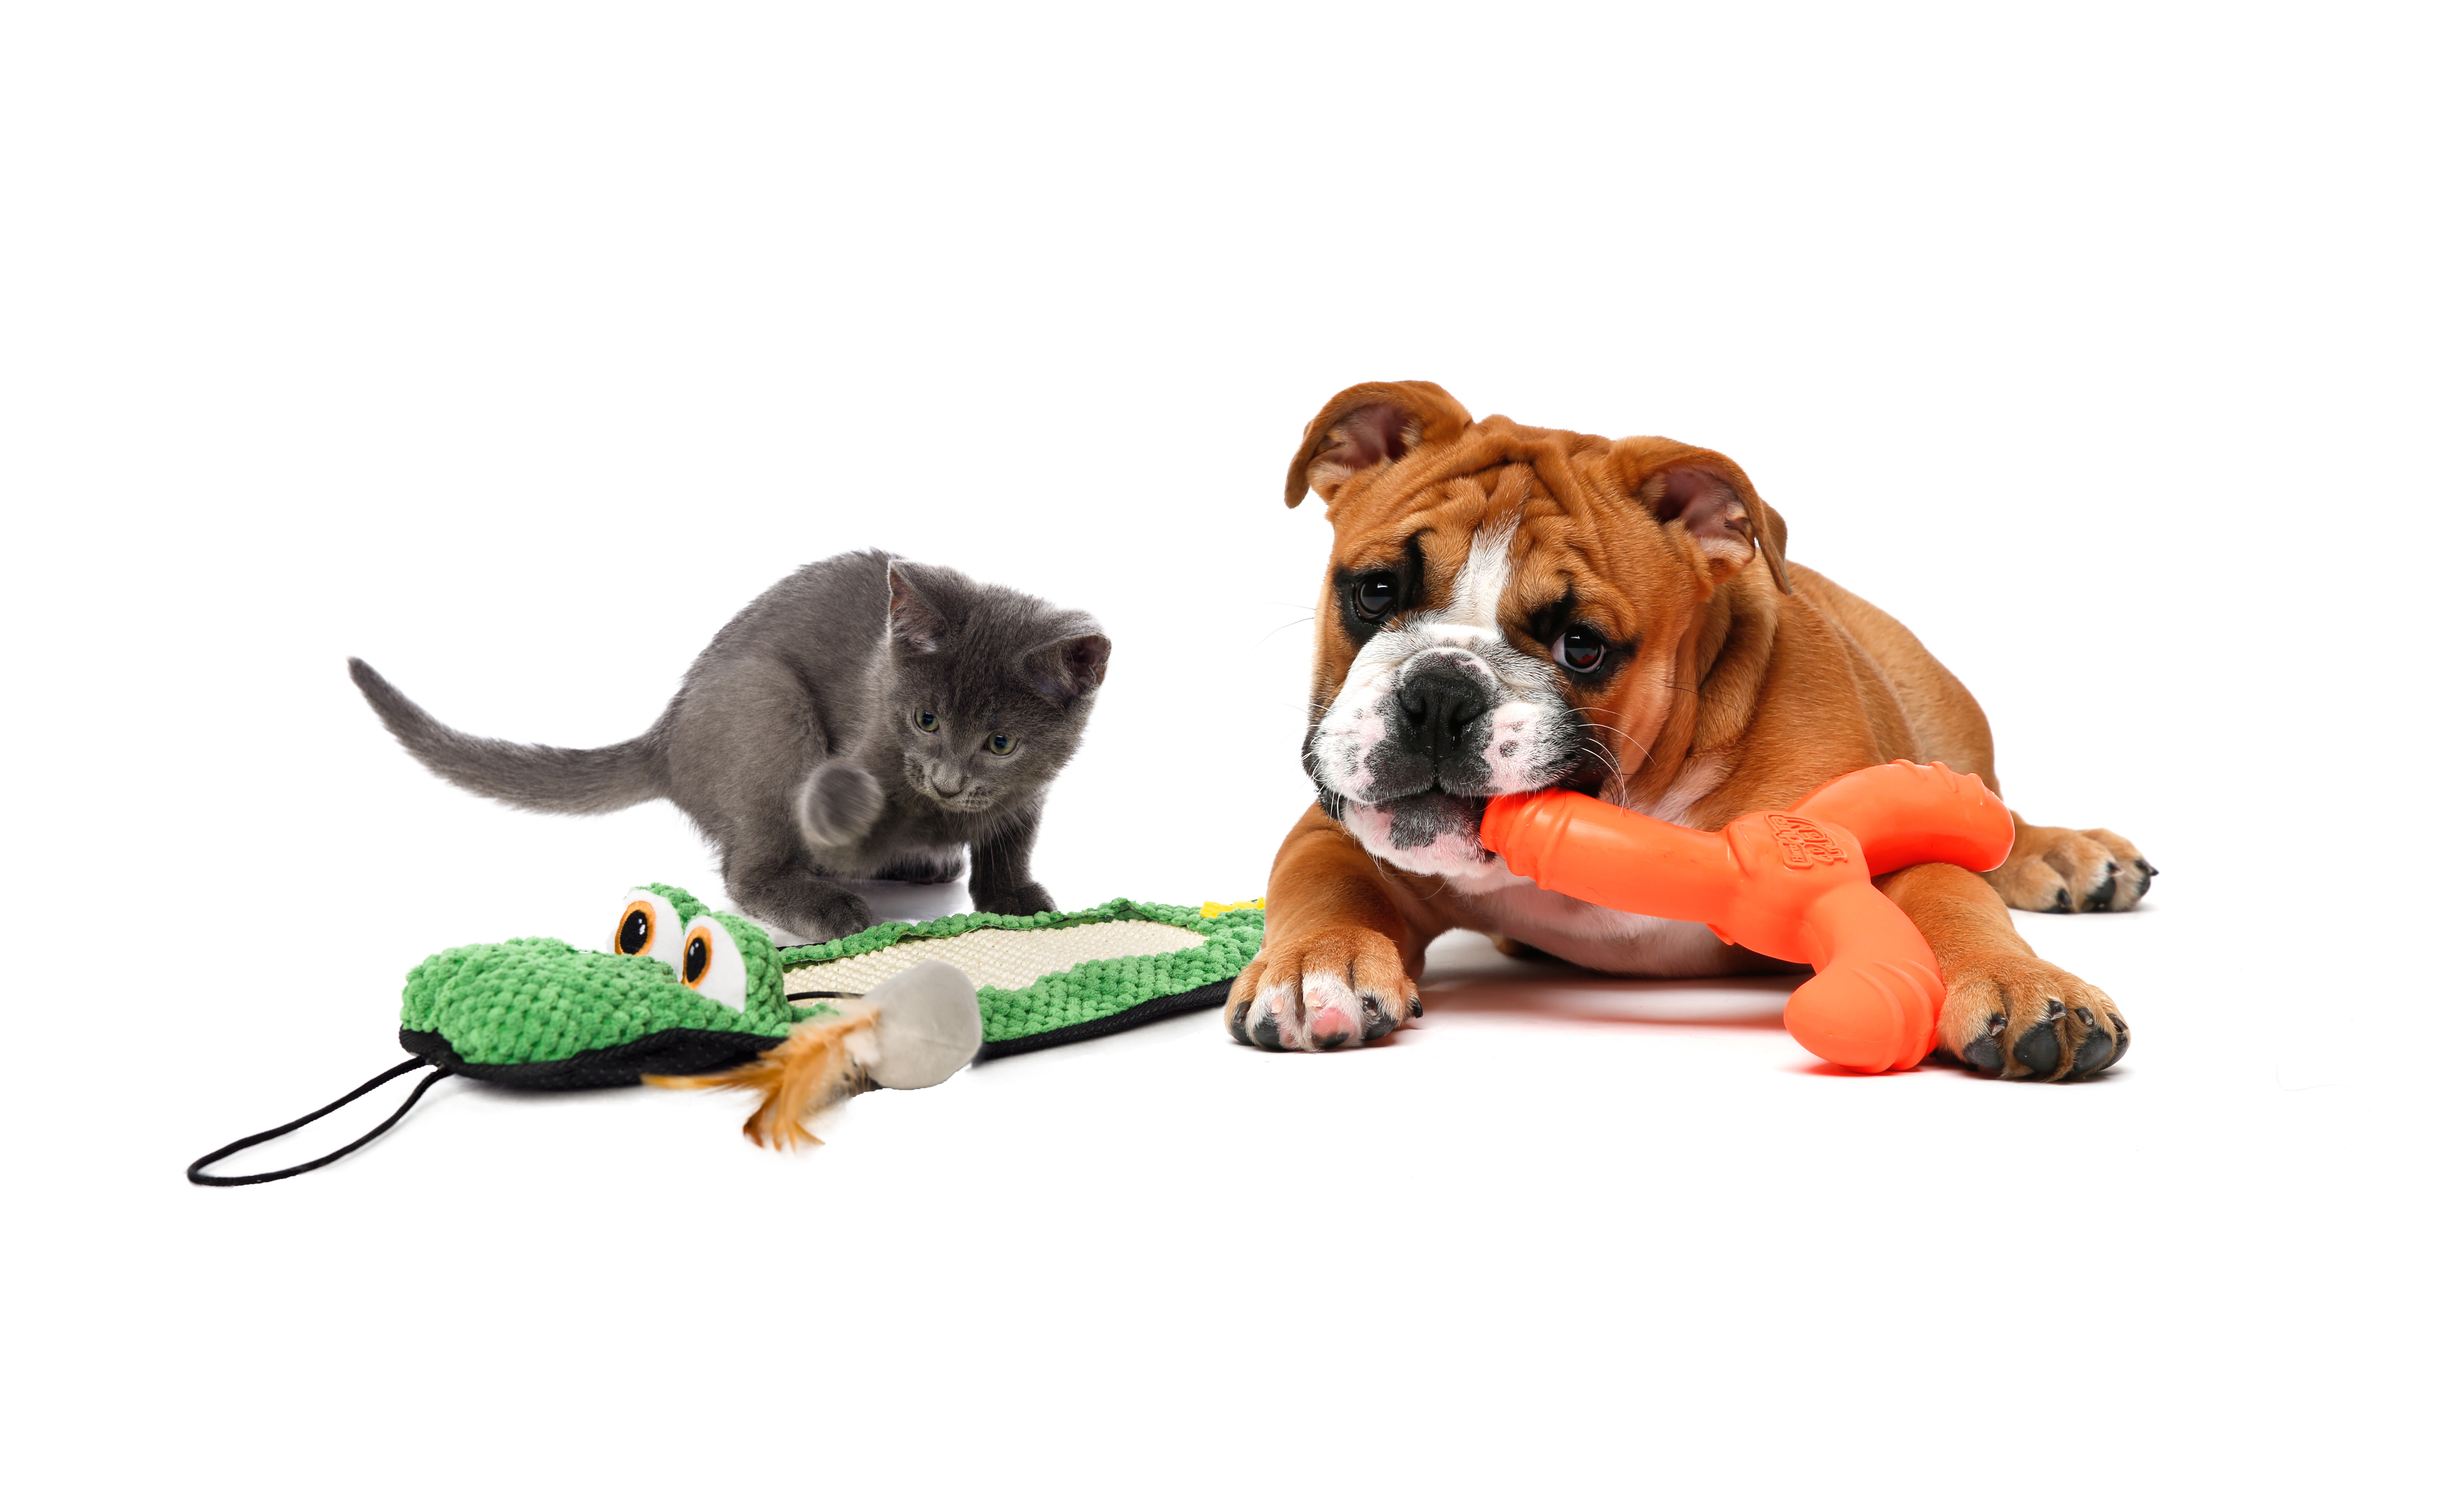 Enjoy a Free Toy for Your Pet From Hartz!